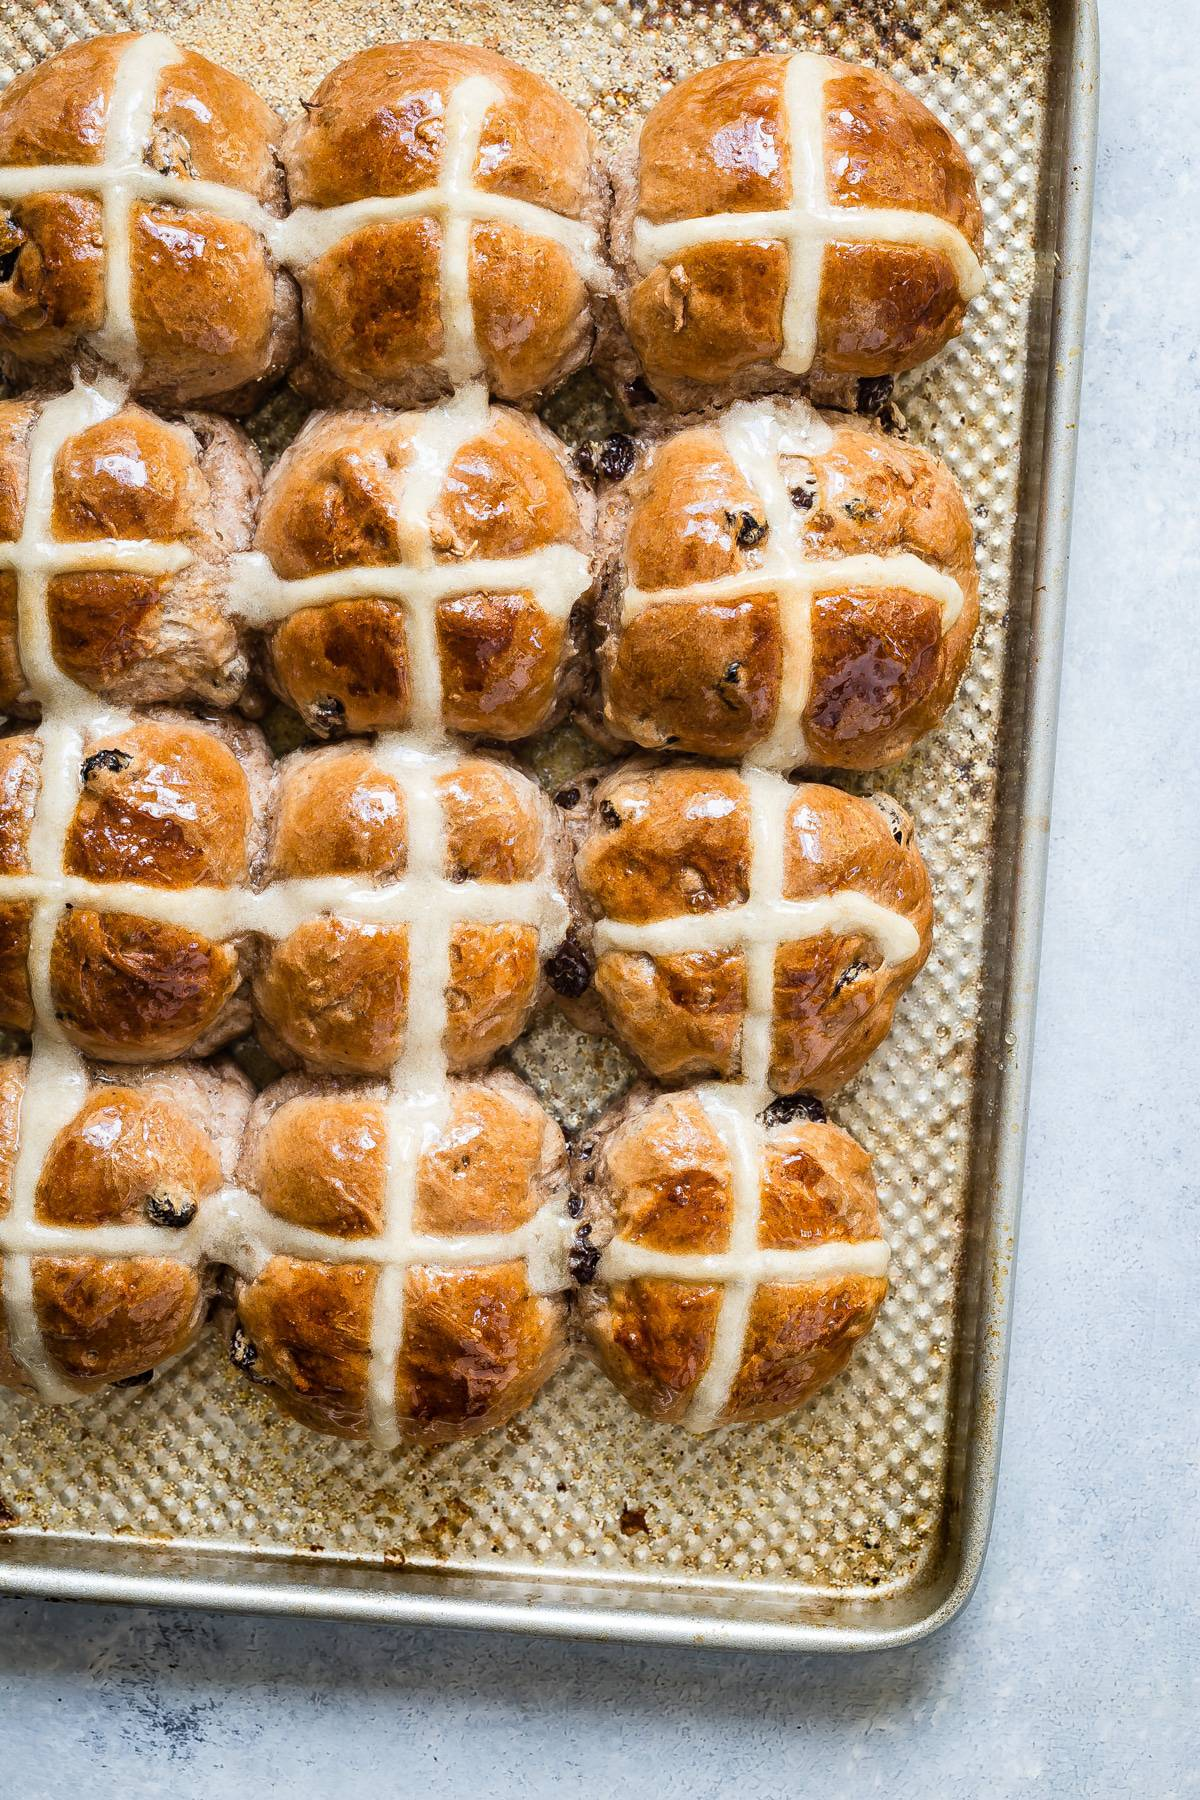 pan of Easter hot cross buns with sweet glaze on top